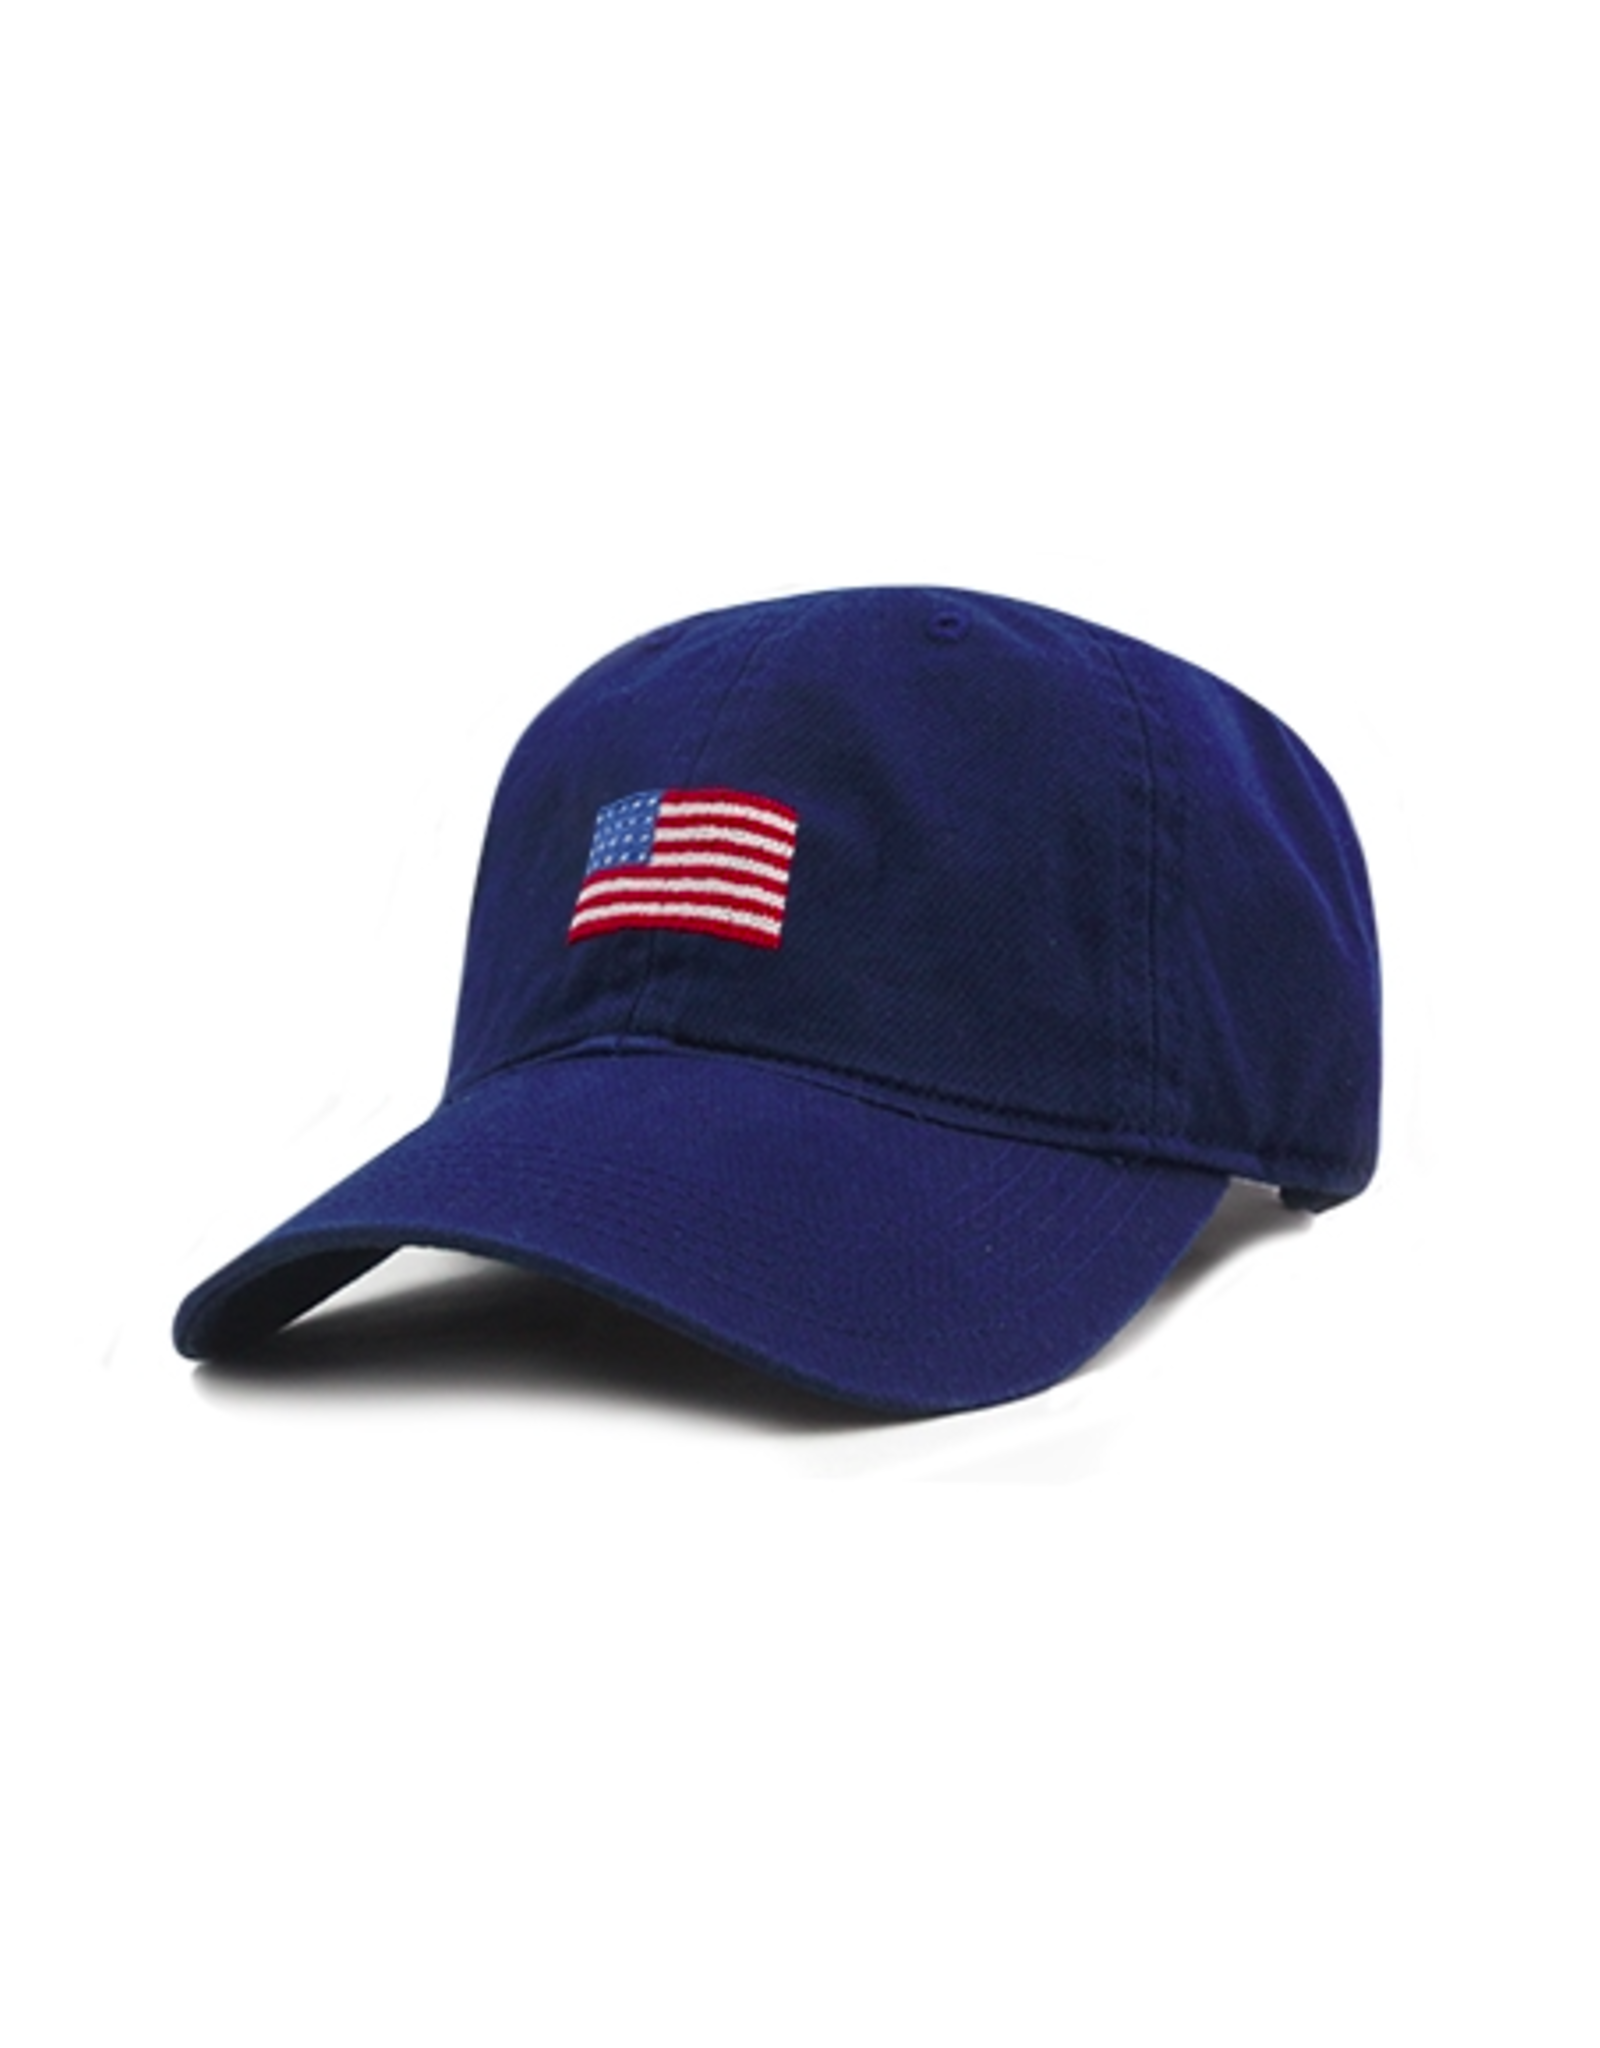 Smathers and Branson American Flag Small Fit Hat (Navy)